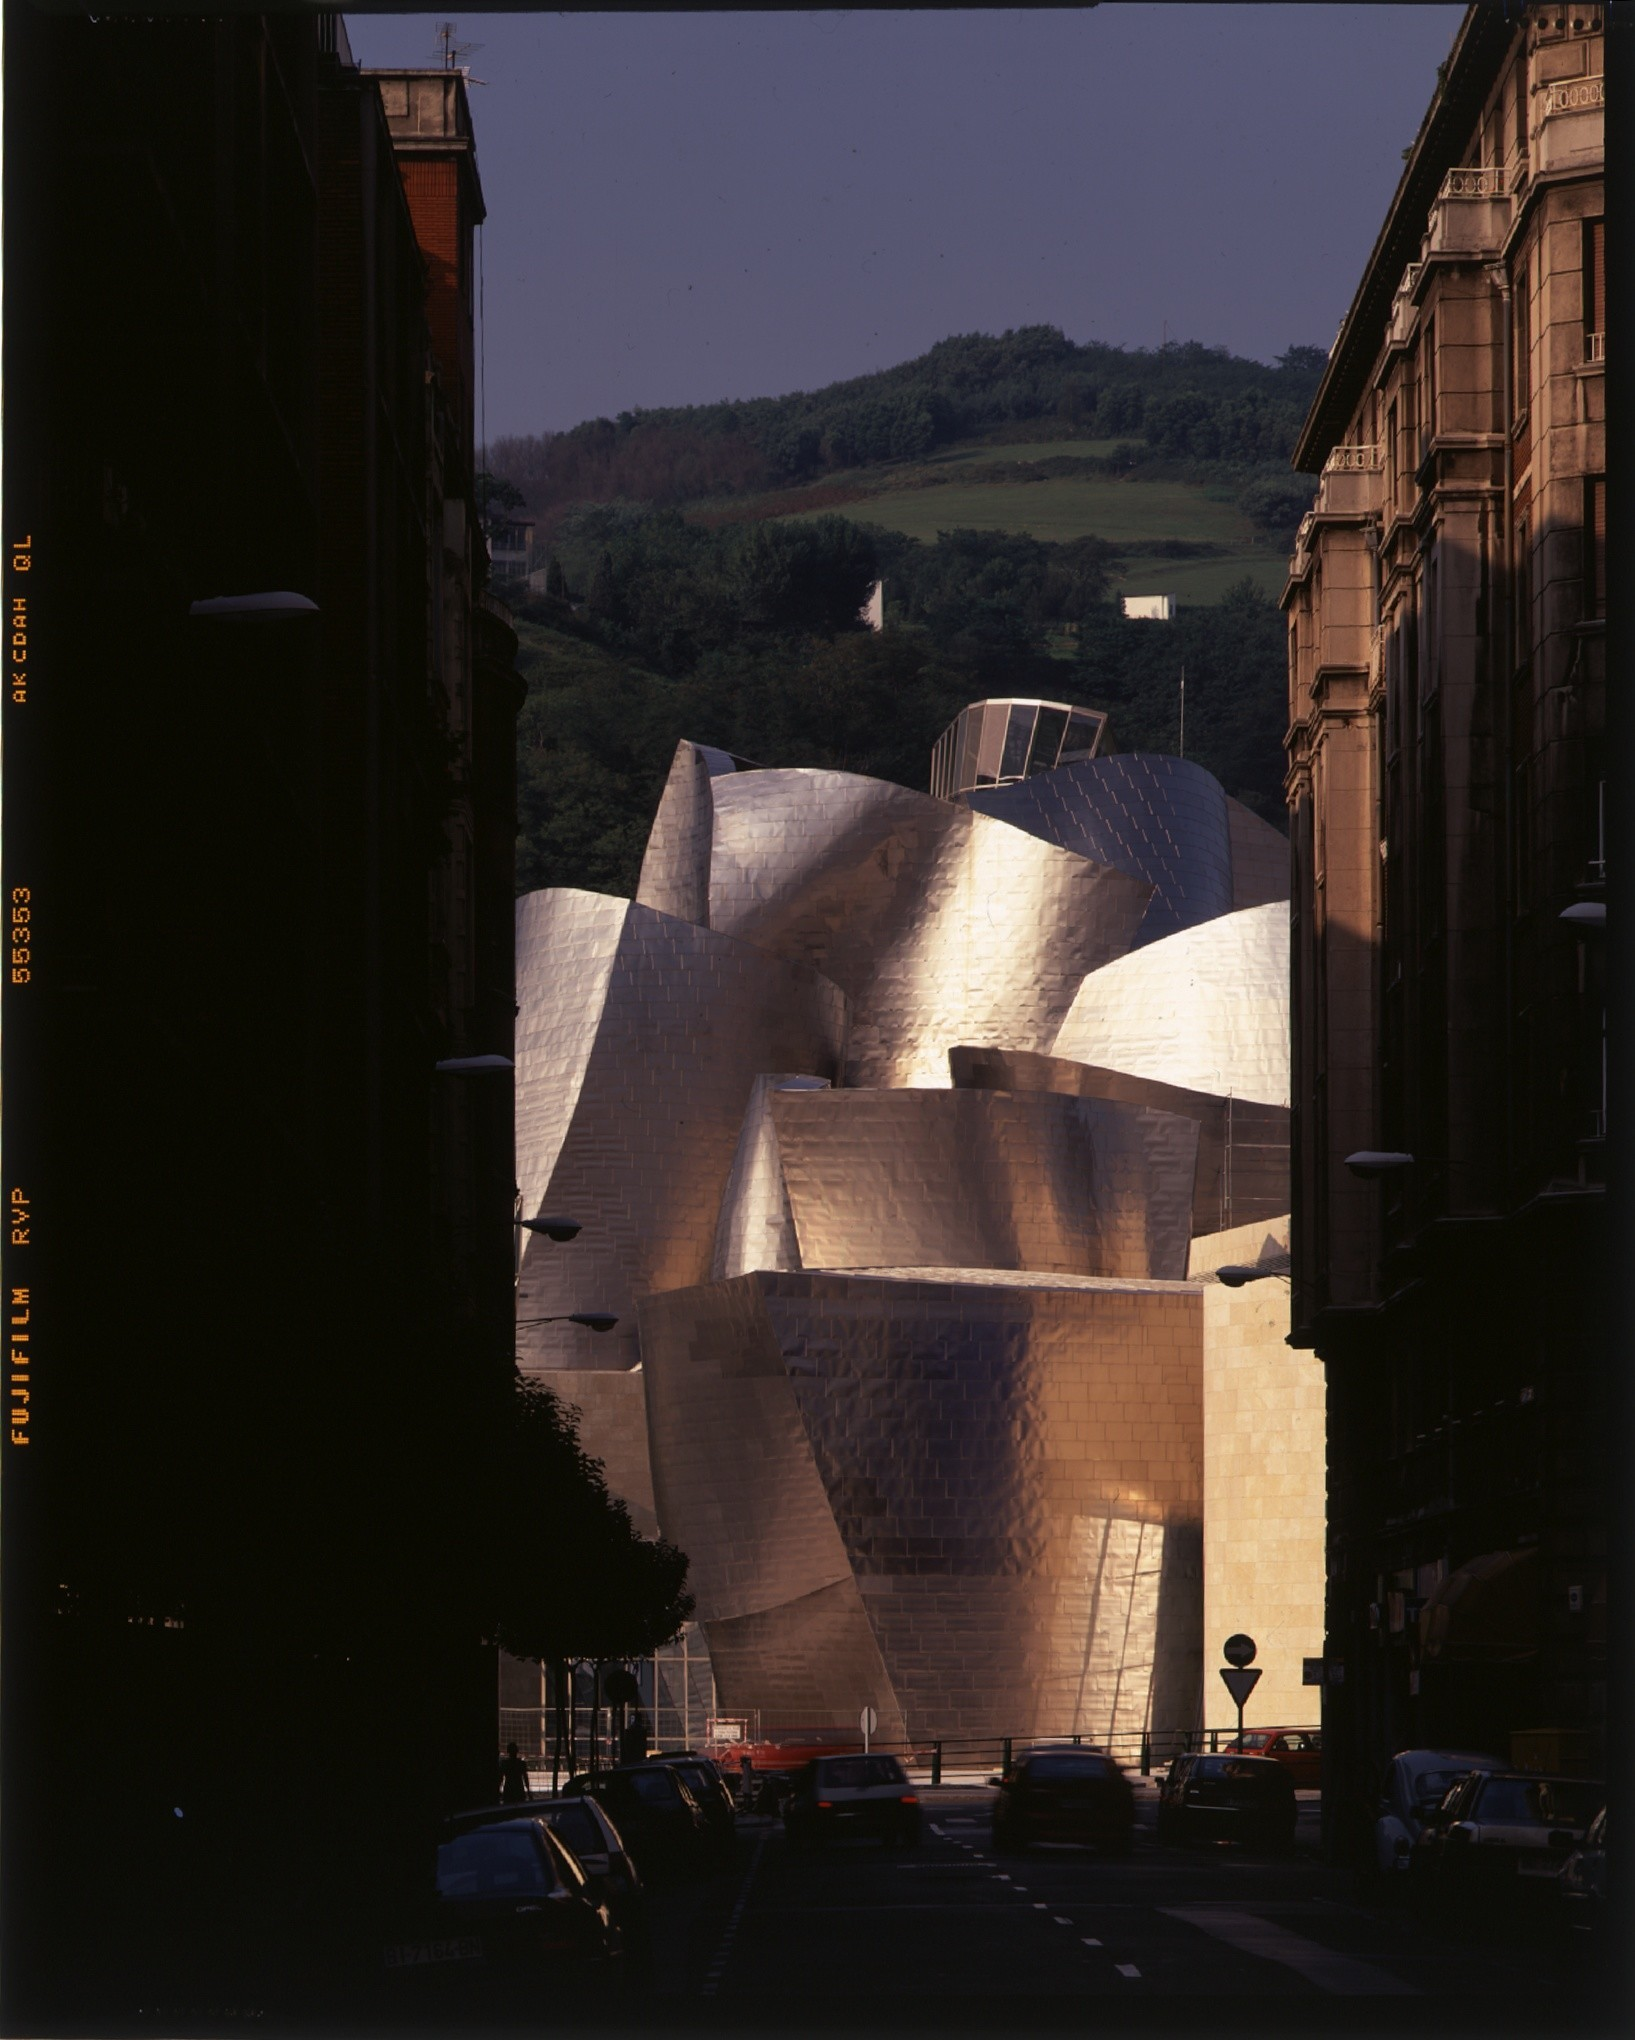 The Guggenheim Bilboa, as seen from Iparraguirre Street.